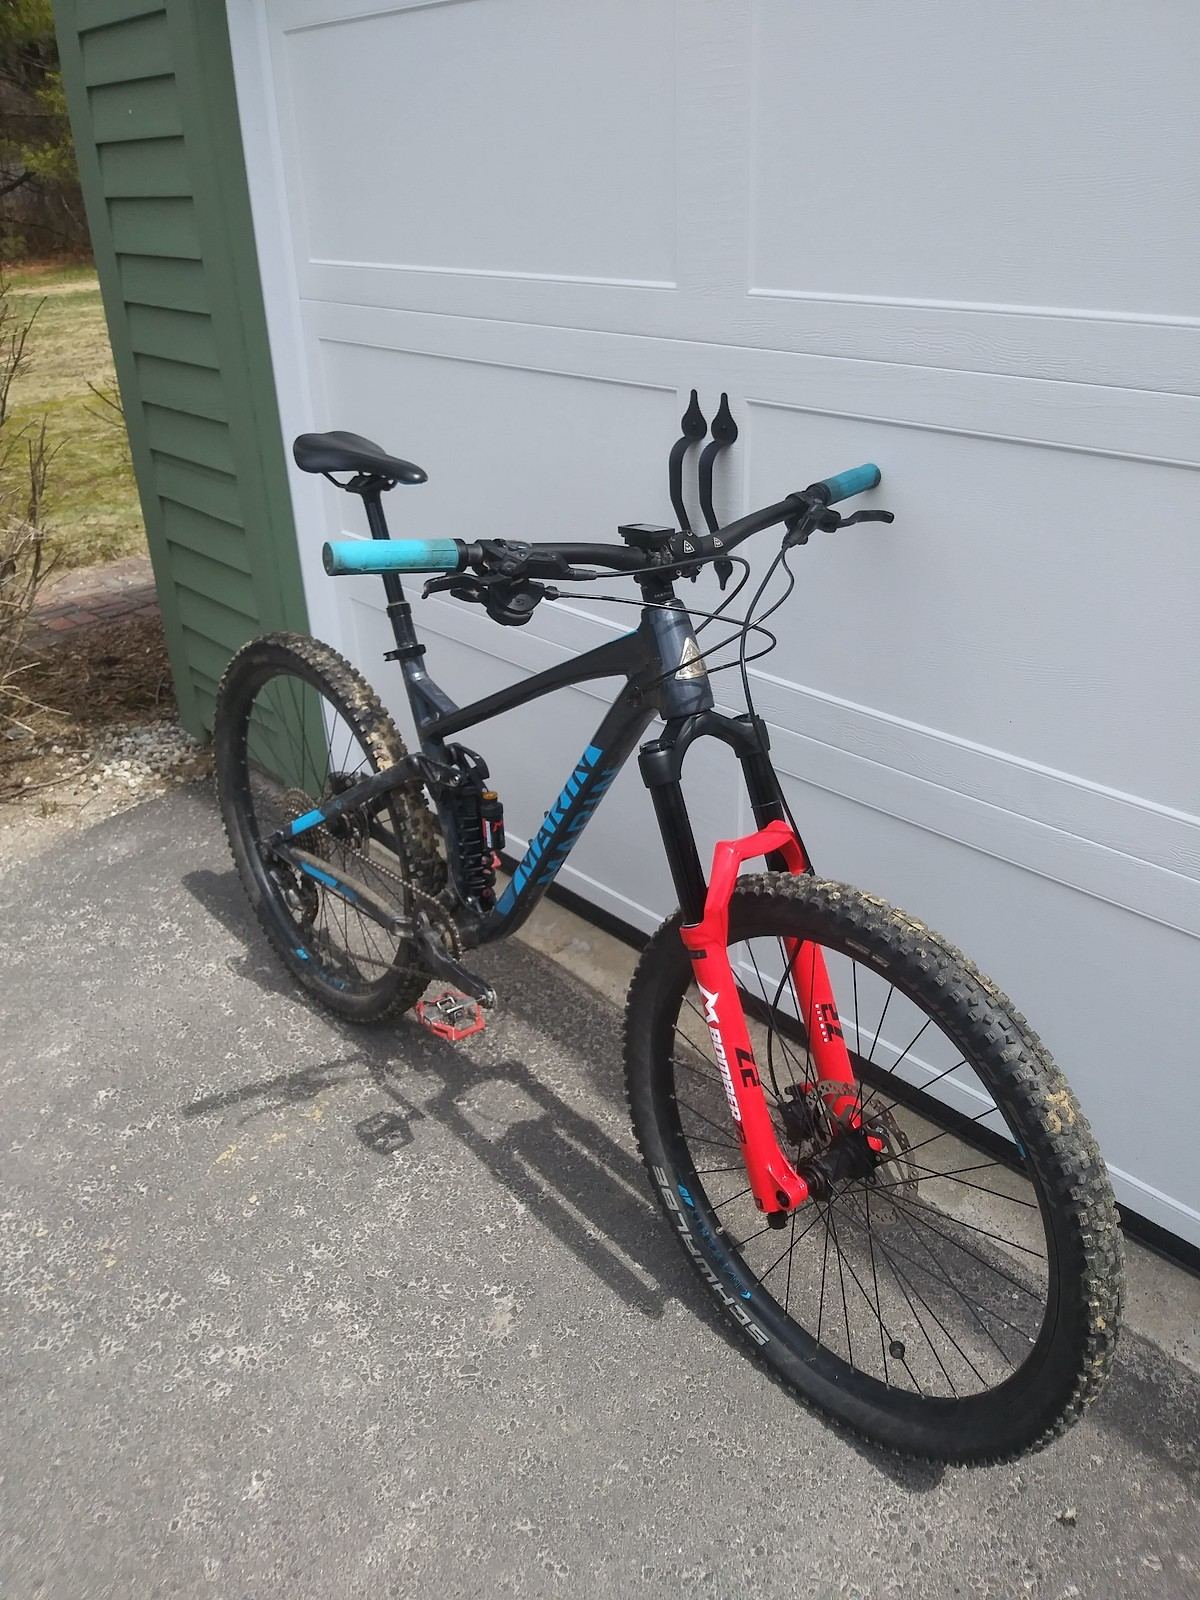 2018 Marin hawk hill 1.5 (hawk hill 1 with upgrades)